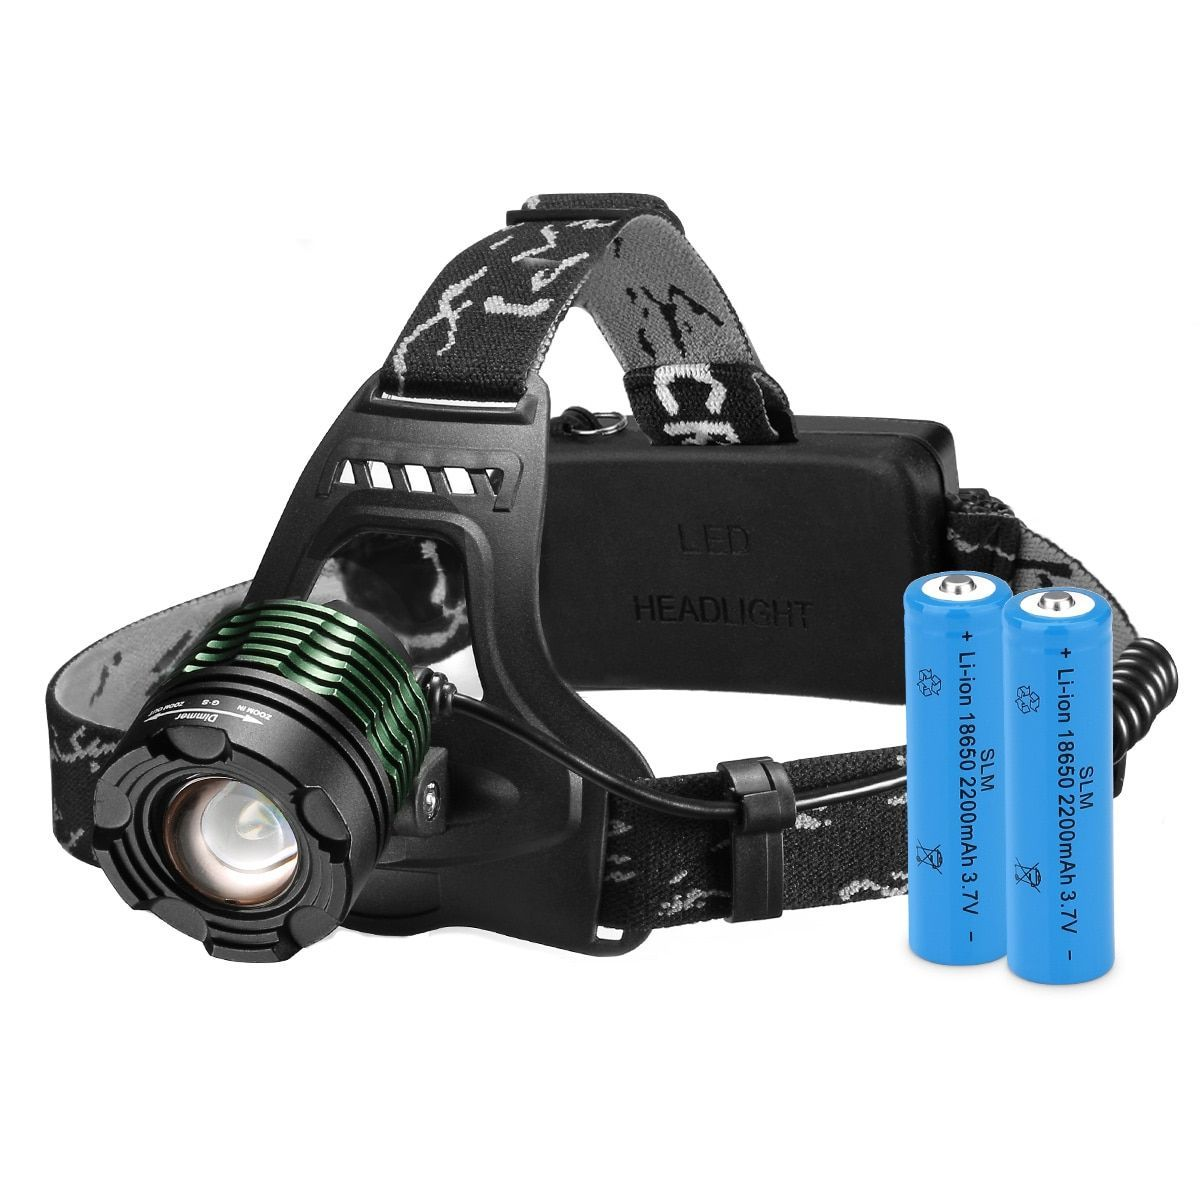 High Power Headlamp Rechargeable Led Lamp With 4 Light Modes 2